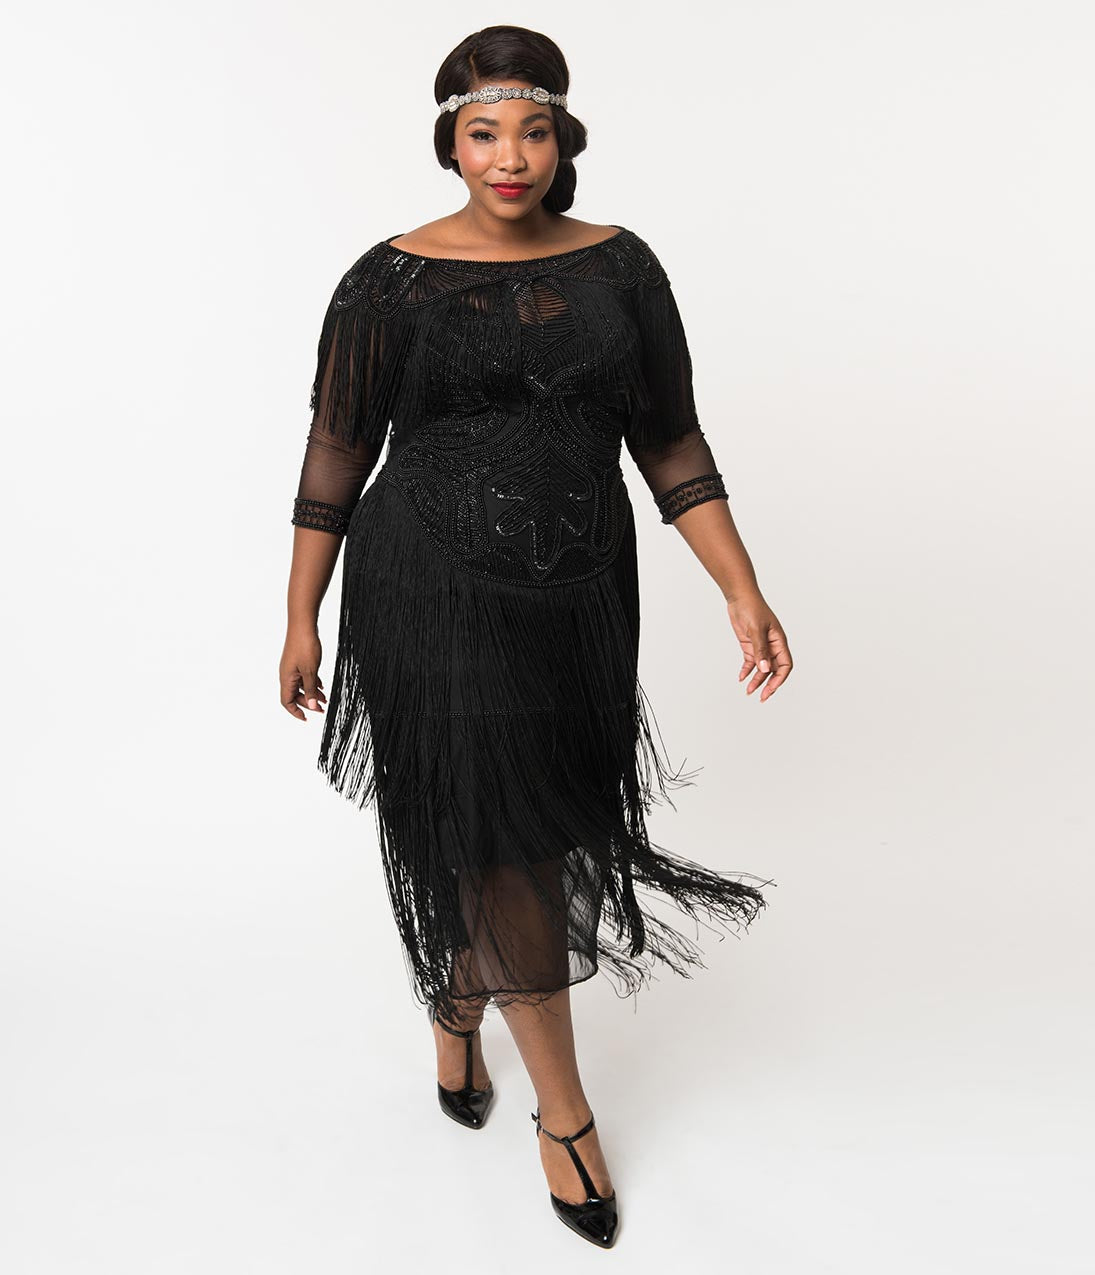 Downton Abbey Inspired Dresses Plus Size 1920S Style Black Beaded Mesh Glam Fringe Flapper Maxi Gown $186.00 AT vintagedancer.com